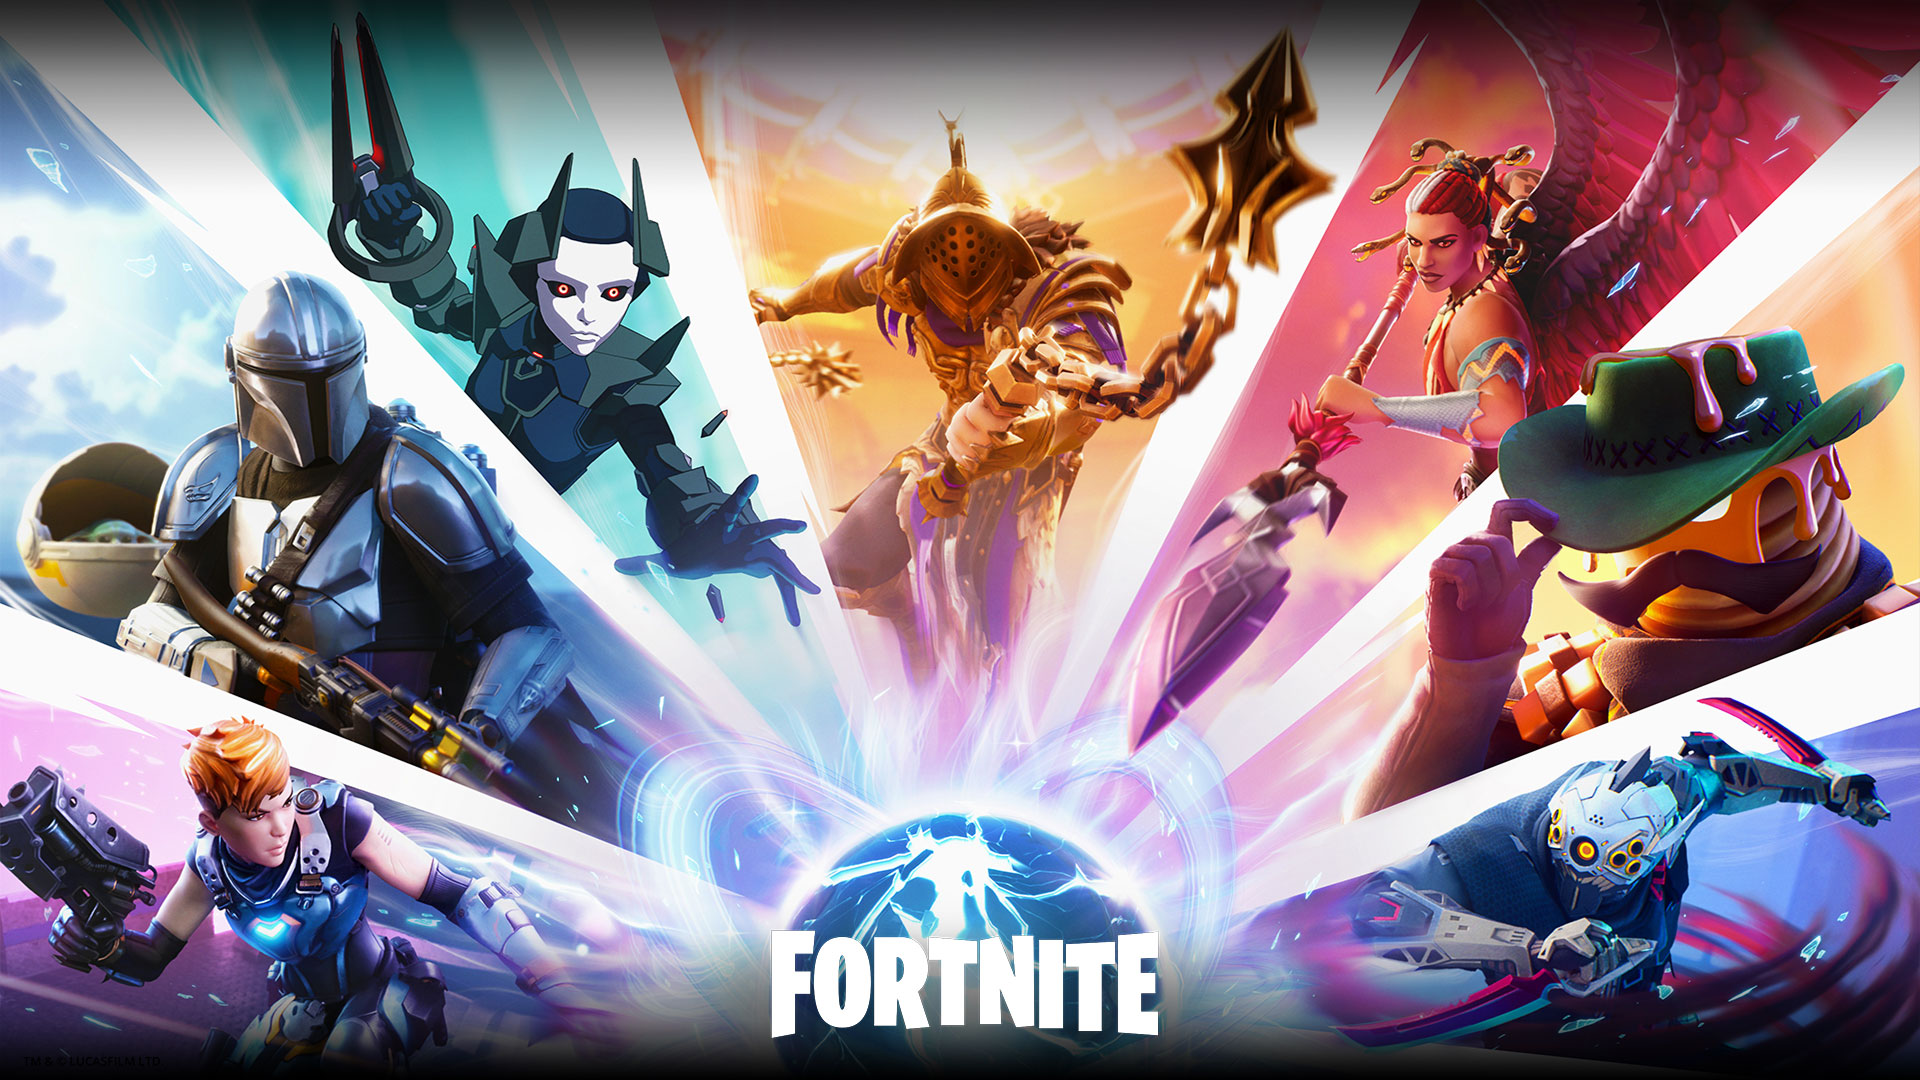 Fortnite, A collage of characters, including The Mandalorian, are all centred around a glowing blue orb.